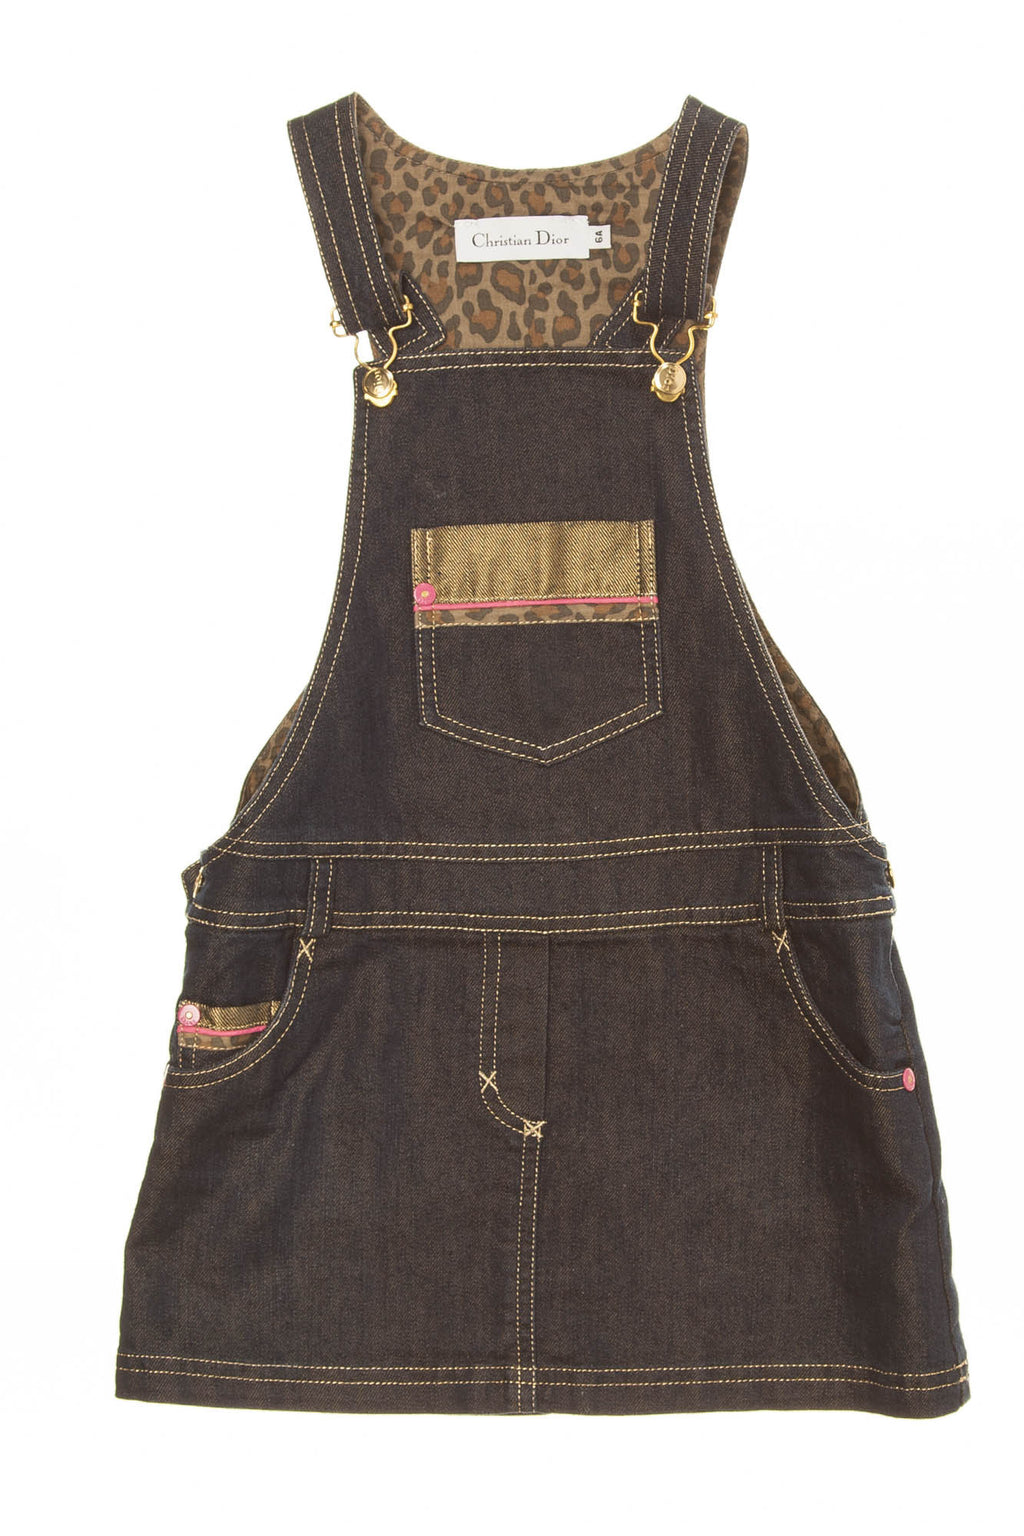 Christian Dior - Dark Blue Denim Overalls Dress - 6A